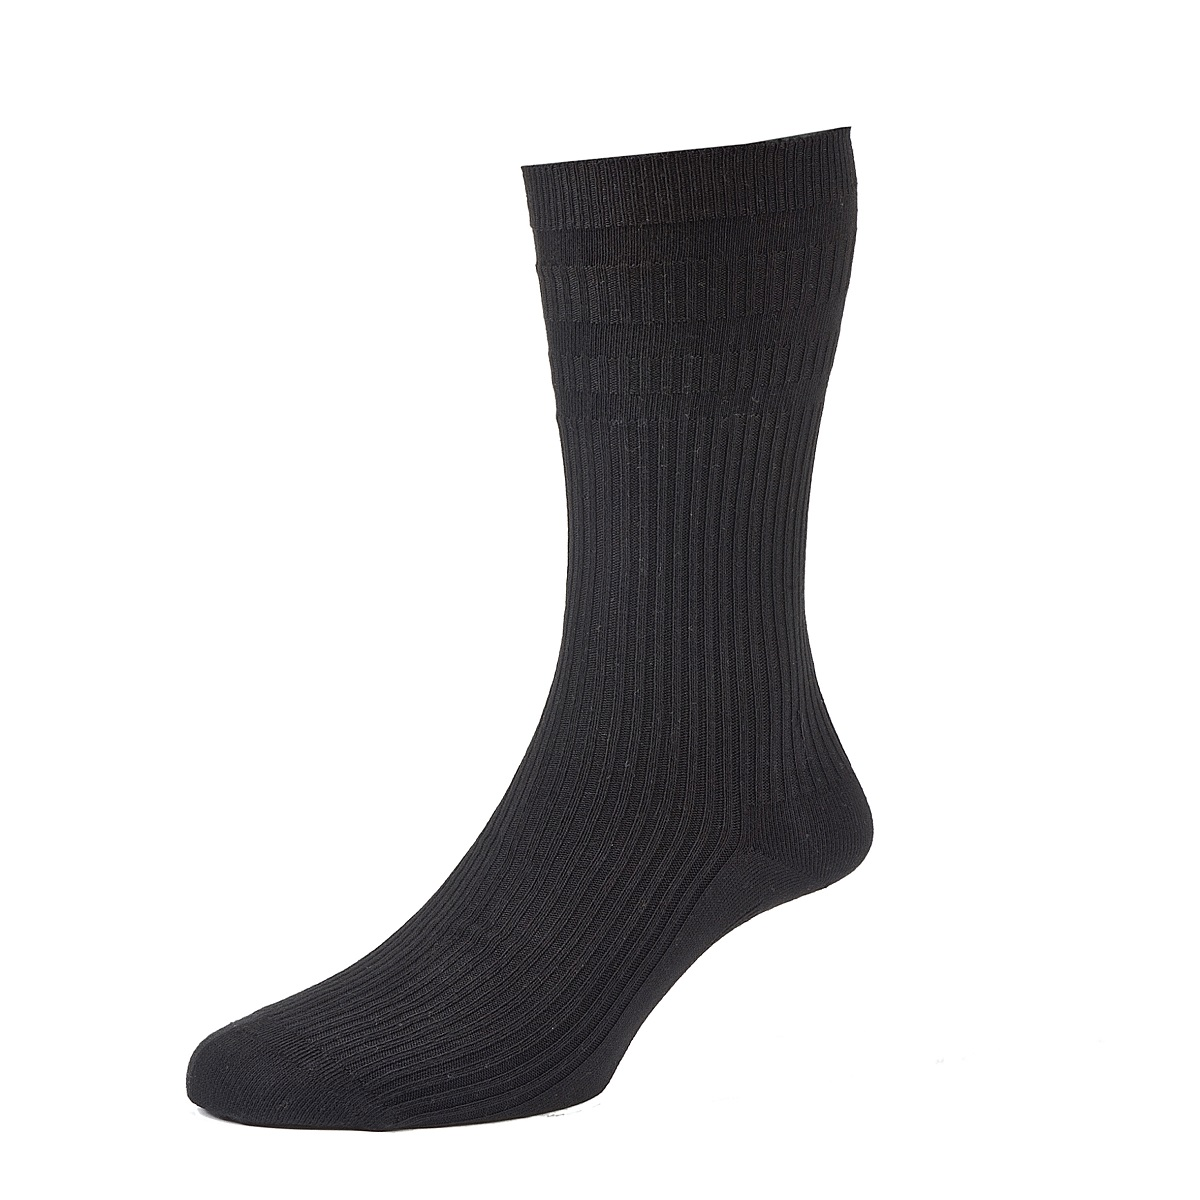 HJ Hall Softop Mens Extra Wide Cotton size 11-13  Black HJ191